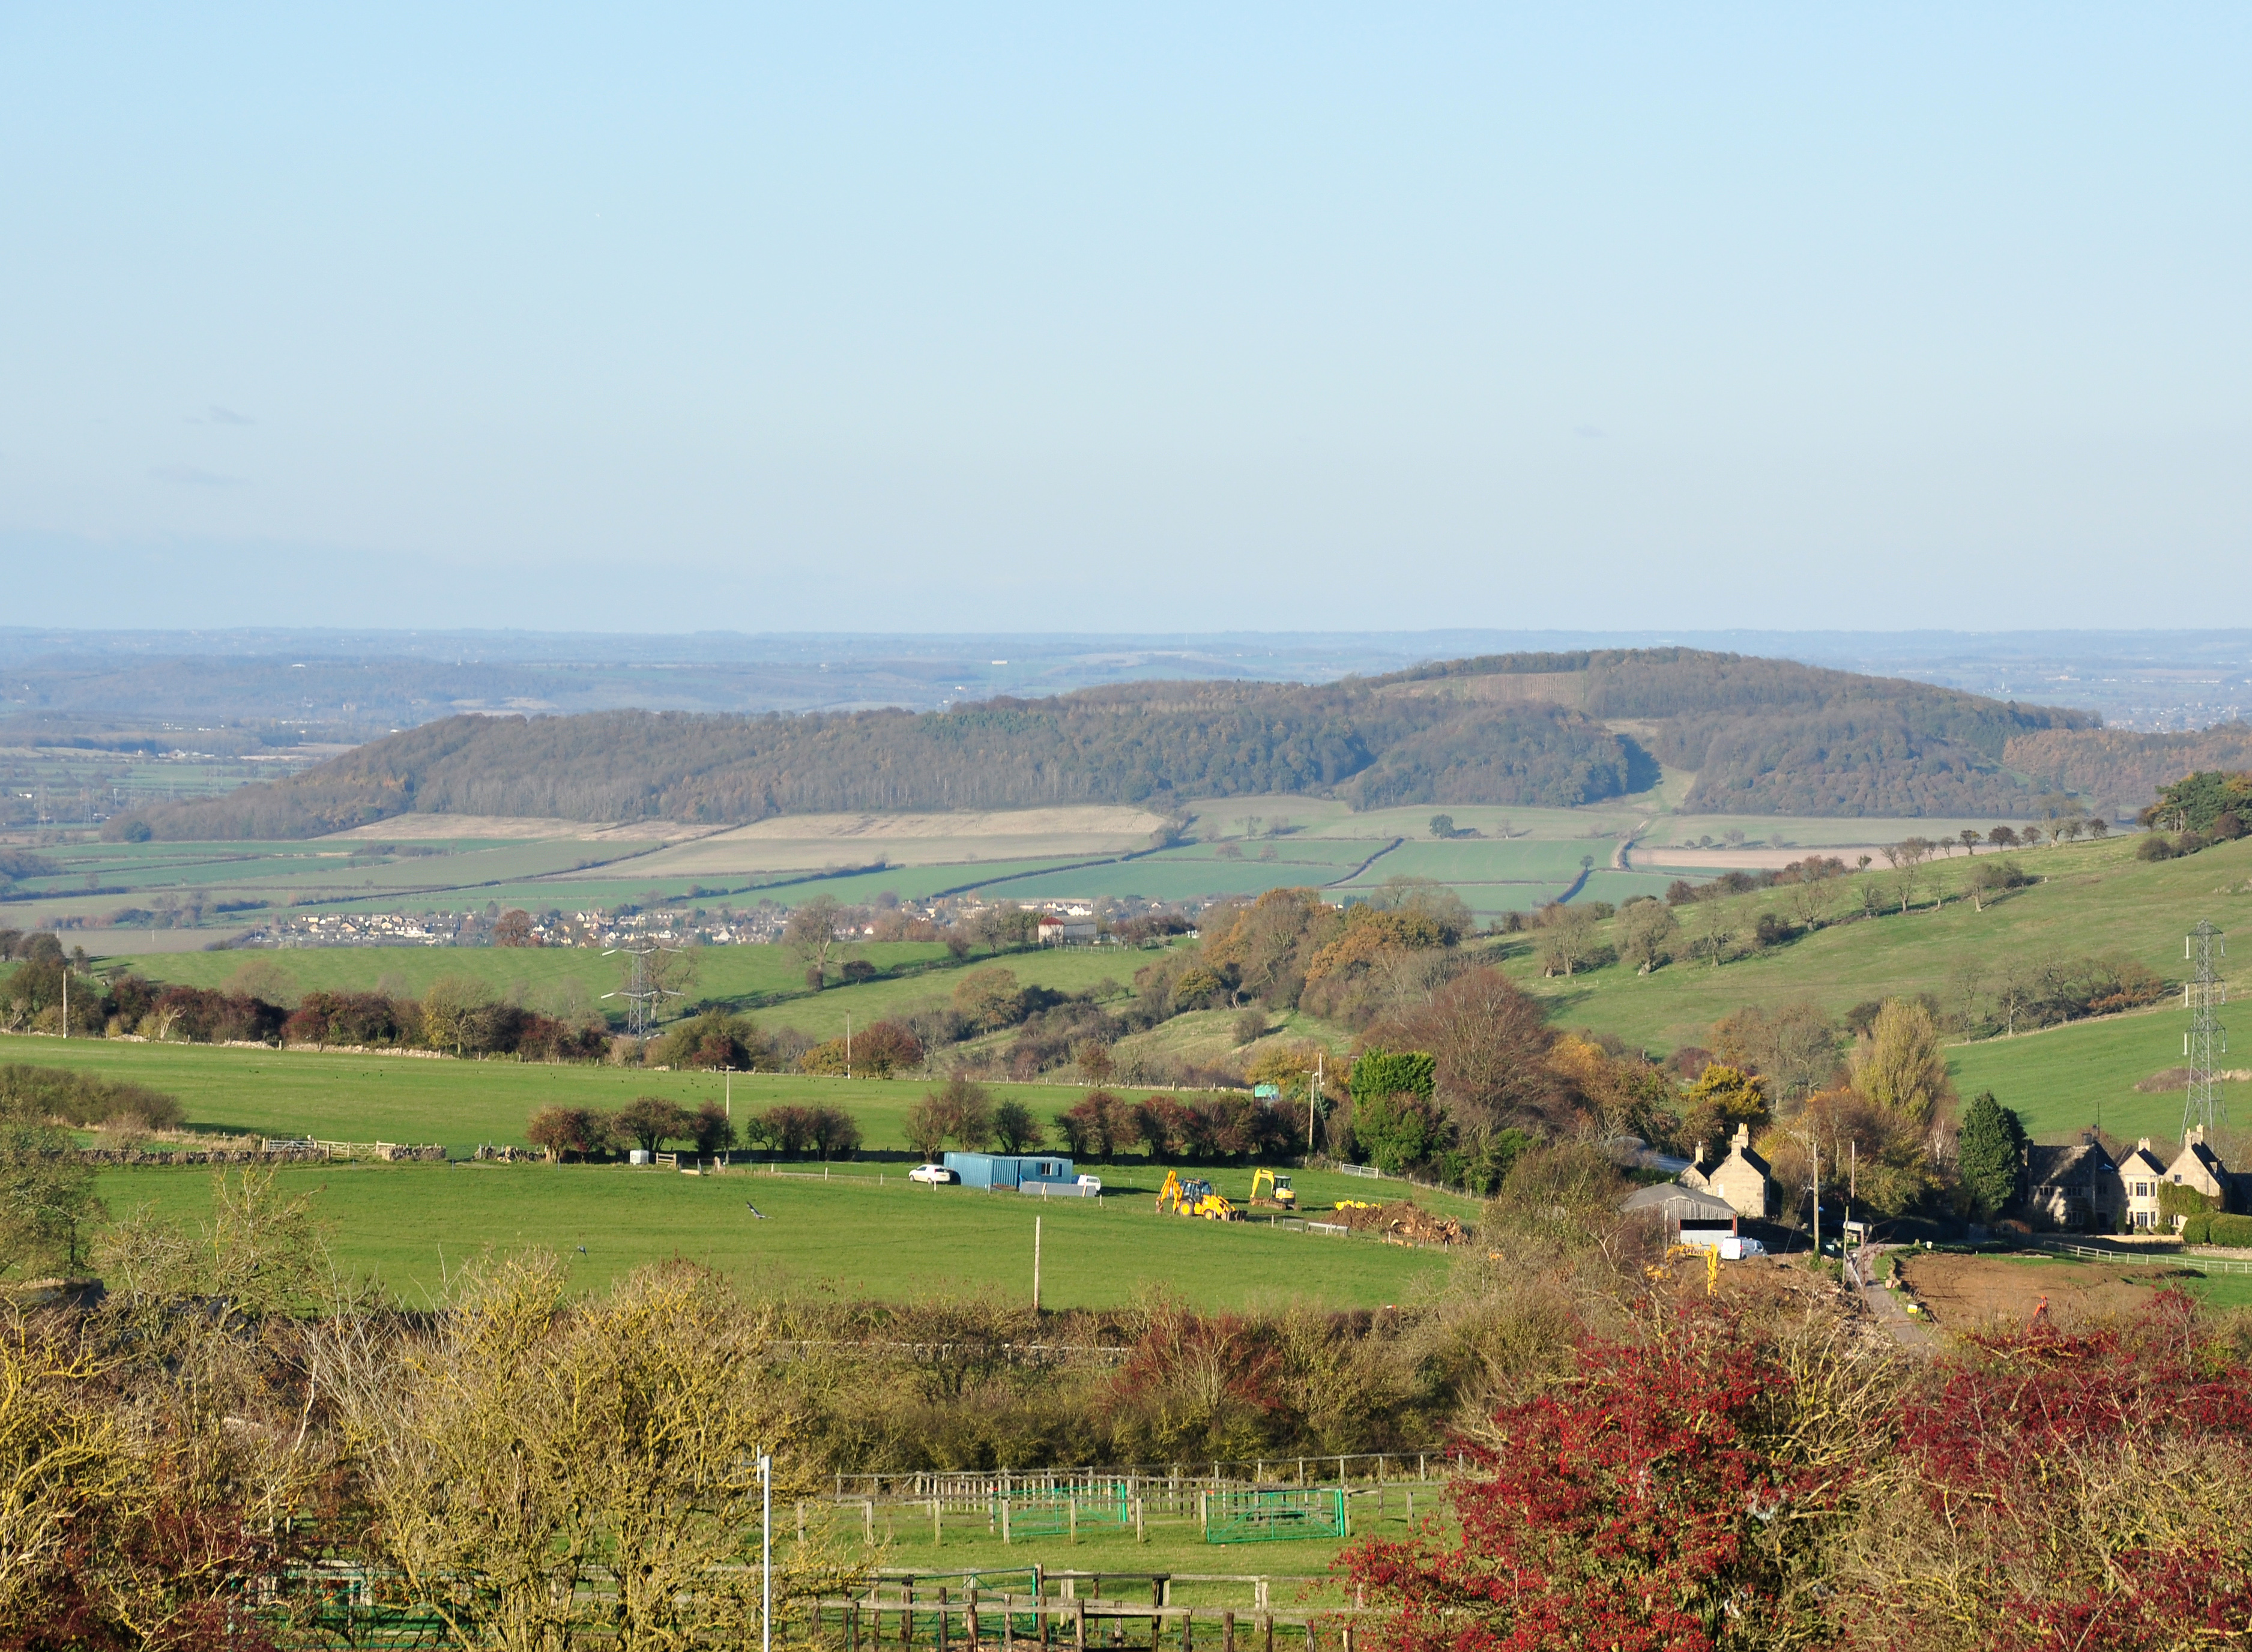 File:Alderton Hill from Cleeve Hill.jpg - Wikimedia Commons